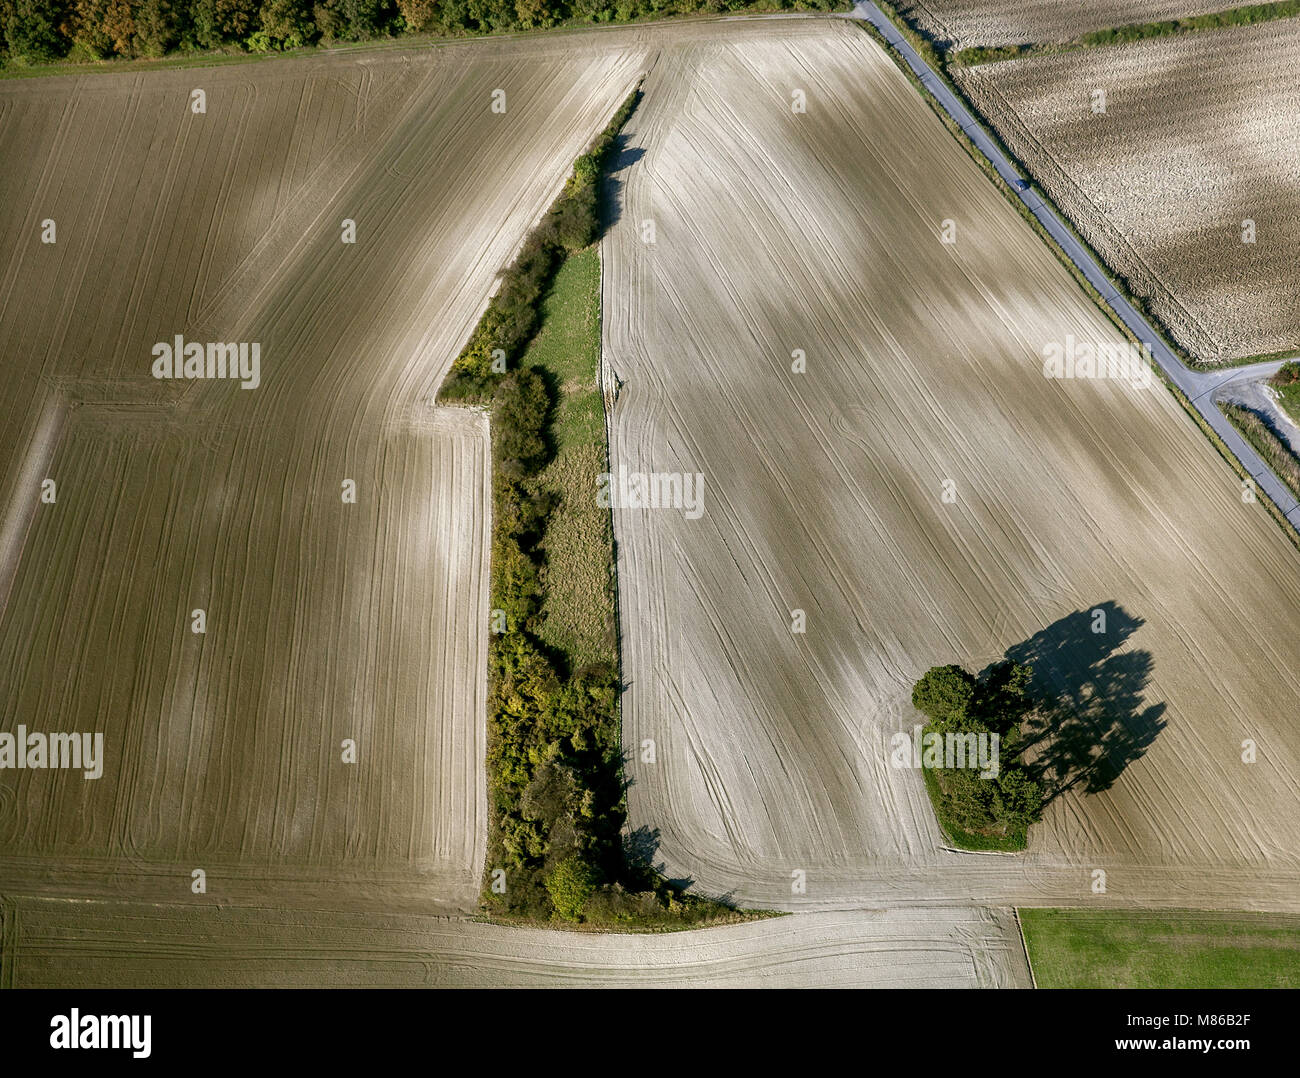 Aerial view, hedgerows a one. Wall hedge in the form of a one 1, the Aufnhame was countered, Hamm, Ruhr area, North - Stock Image